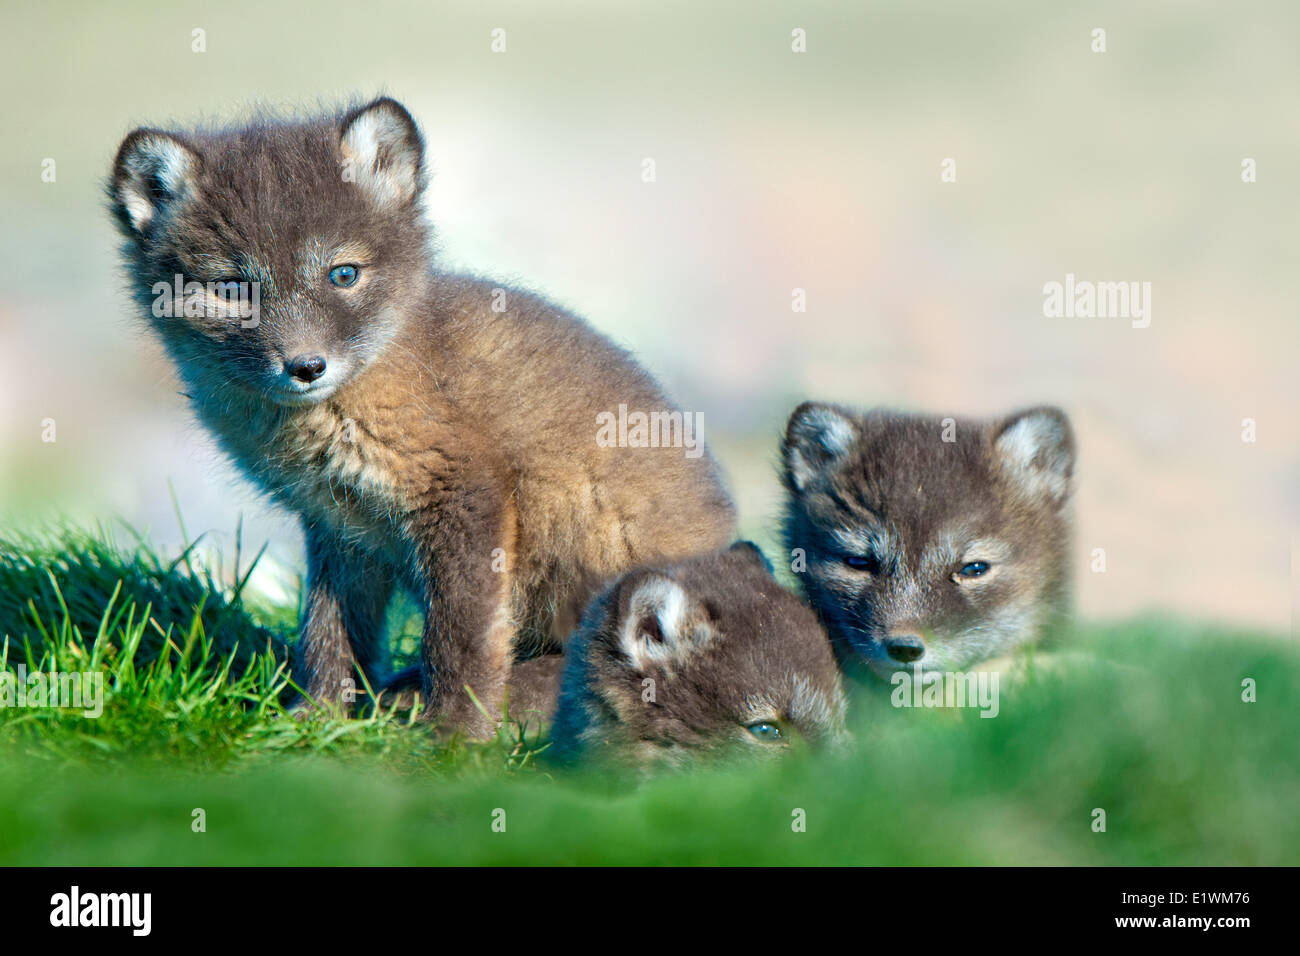 Arctic fox pups (Alipex lagopus) at the mouth of their natal den, Victoria Island, Nunavut, Arctic Canada - Stock Image